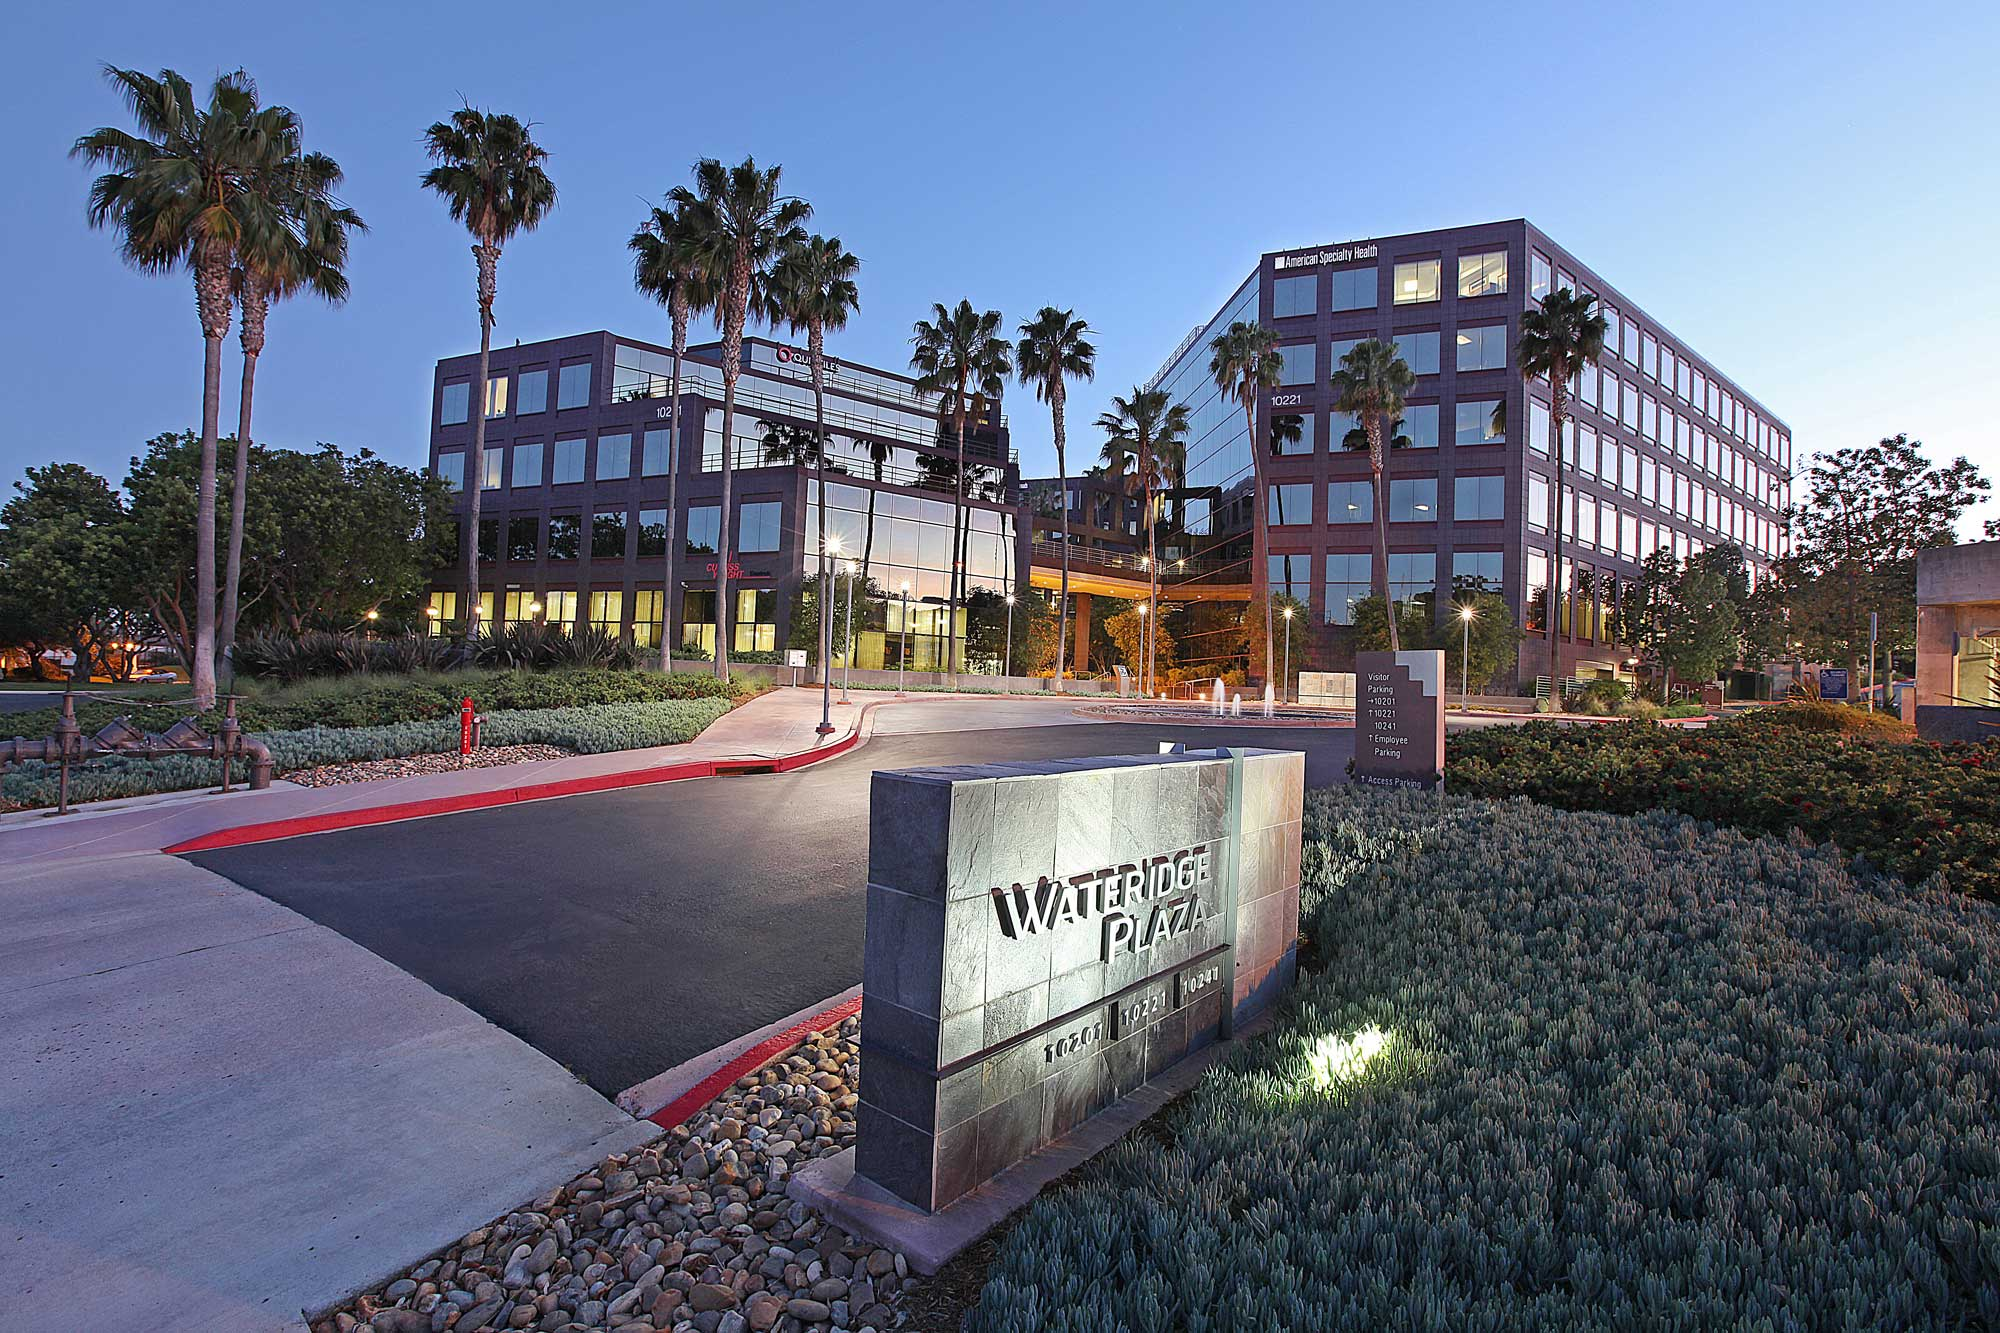 Wateridge Corporate Park, one of San Diego's first business parks to include a residential element, is a 125-acre community master planned as a unique mixed-use corporate environment. Wateridge exudes preeminent corporate identity and offers a select headquarters location for high-tech and bio-medical firms. Wateridge's build-out of over 2.3 million square feet of space gives testament to the success of the park's pioneering master plan.